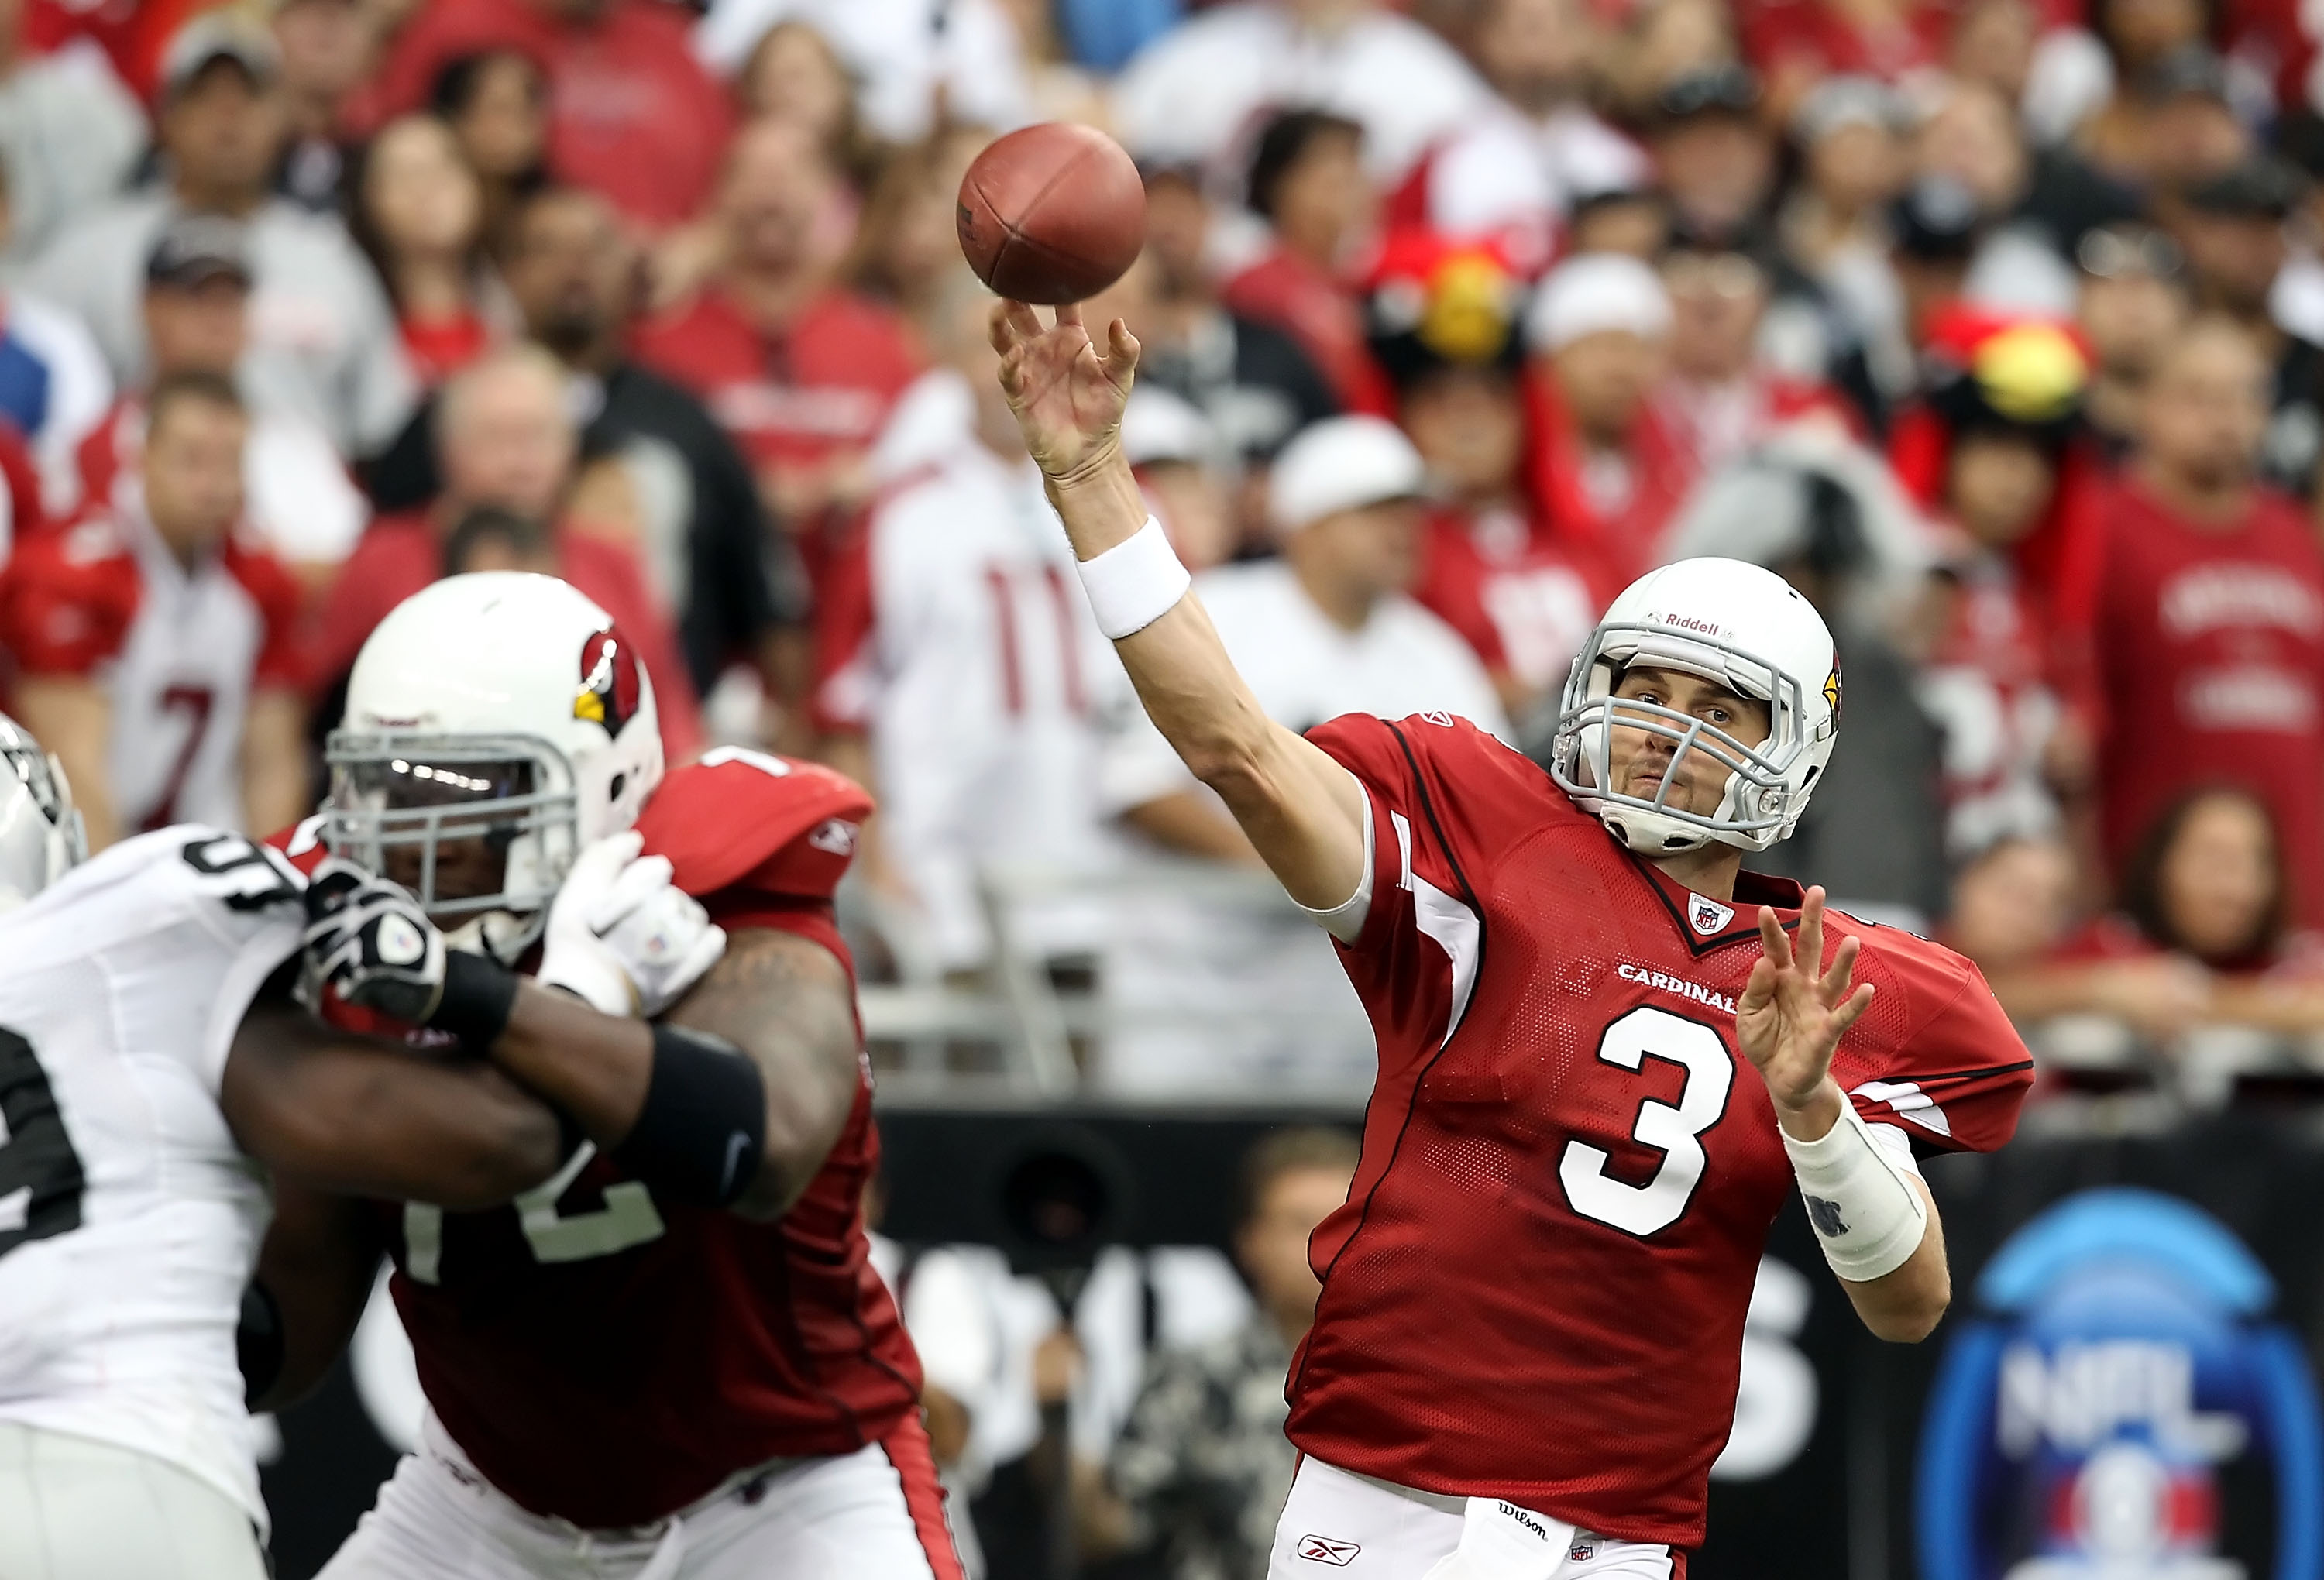 GLENDALE, AZ - SEPTEMBER 26:  Quarterback Derek Anderson #3 of the Arizona Cardinals throws a pass during the NFL game against the Oakland Raiders at the University of Phoenix Stadium on September 26, 2010 in Glendale, Arizona.  The Cardinals defeated the